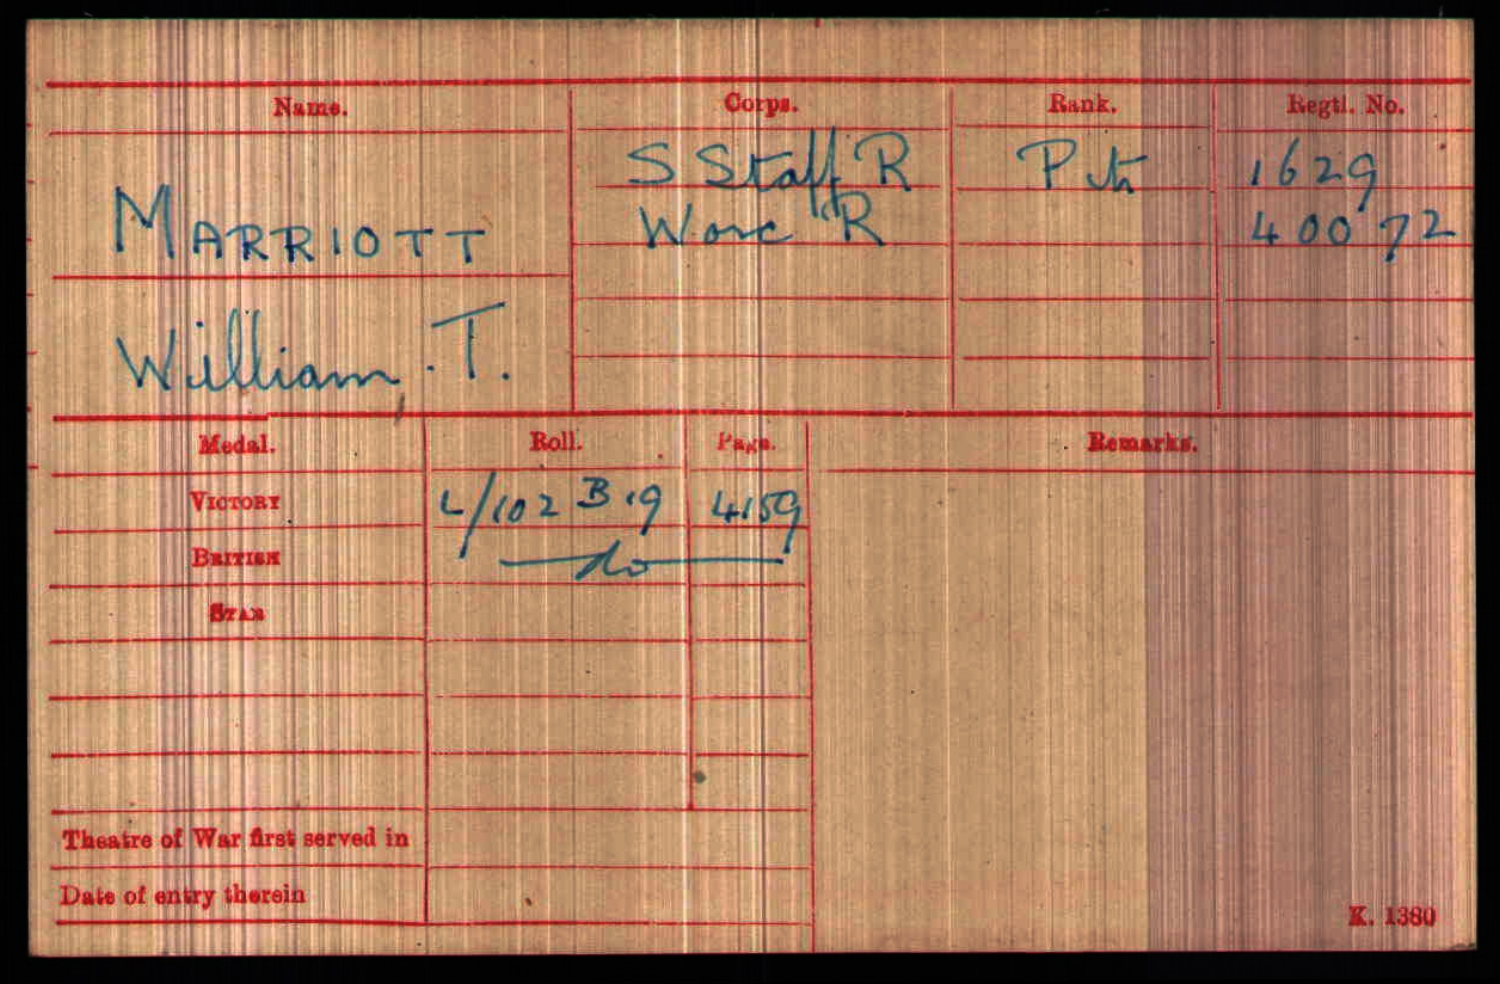 The Record Card for William Thomas Marriott